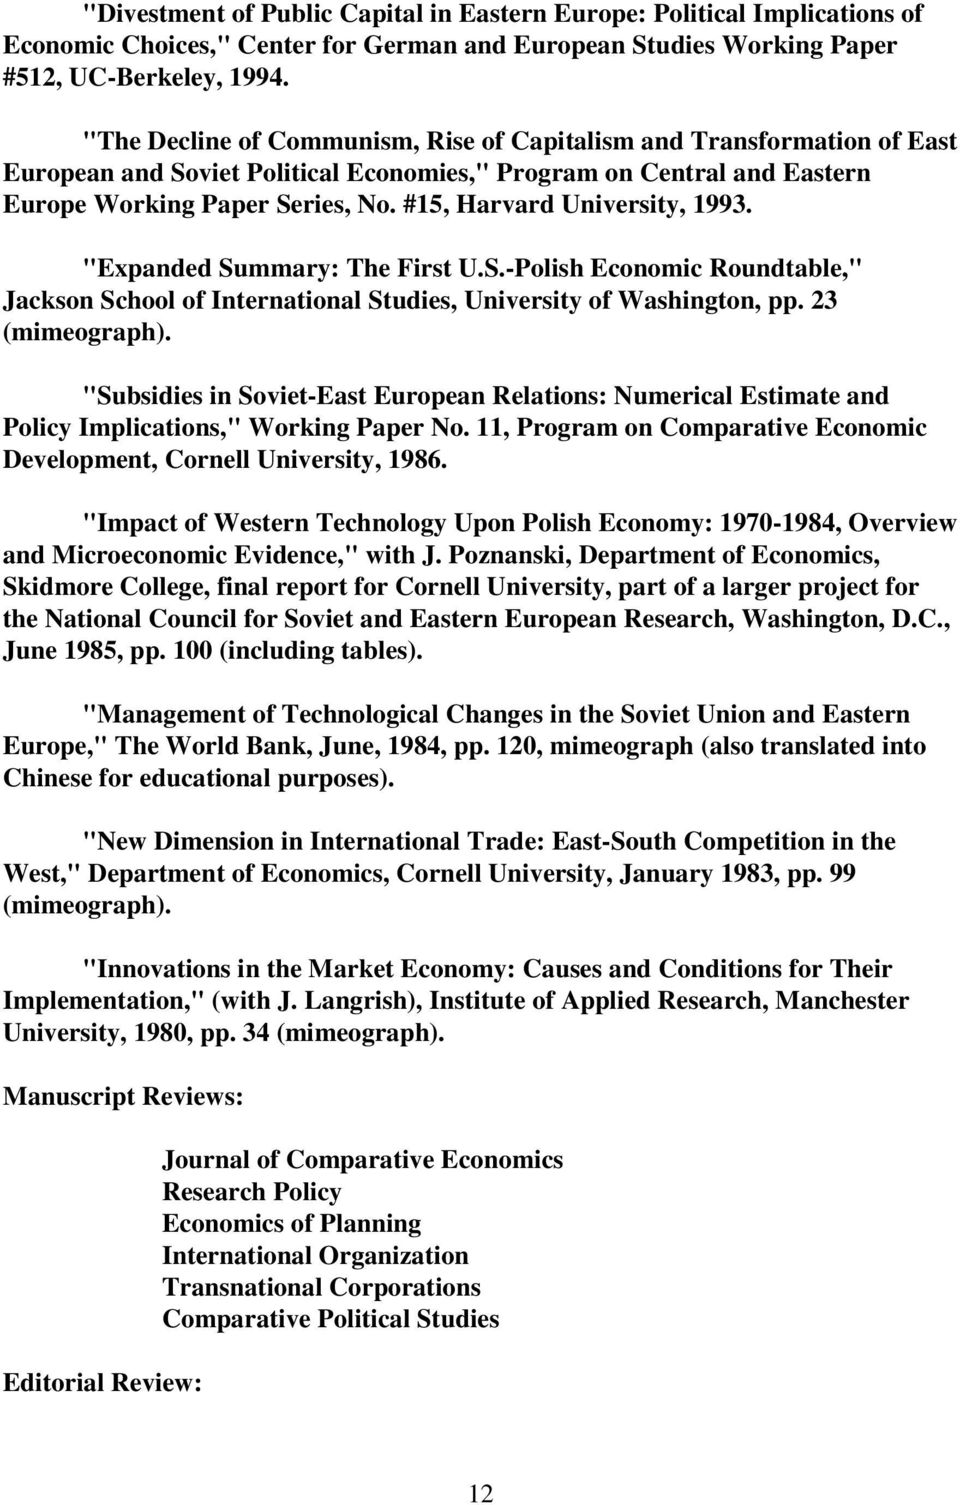 "#15, Harvard University, 1993. ""Expanded Summary: The First U.S.-Polish Economic Roundtable,"" Jackson School of International Studies, University of Washington, pp. 23 (mimeograph)."